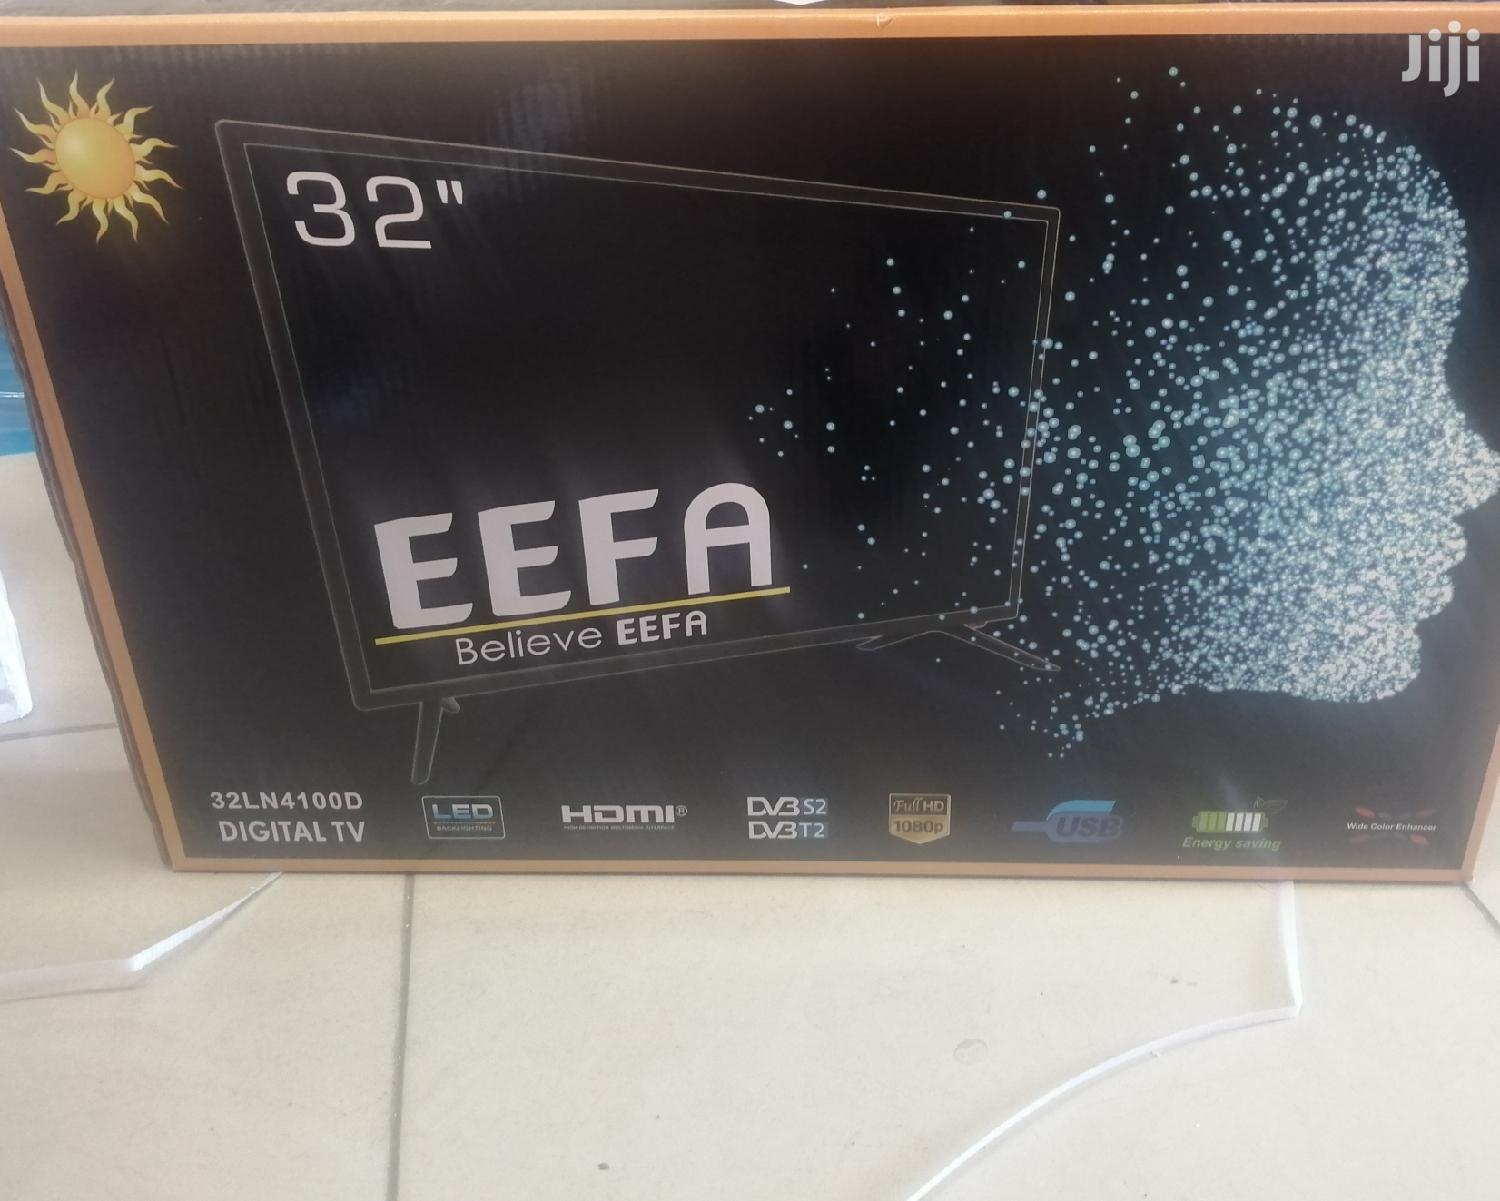 Archive: Eefa 32 Digital TV